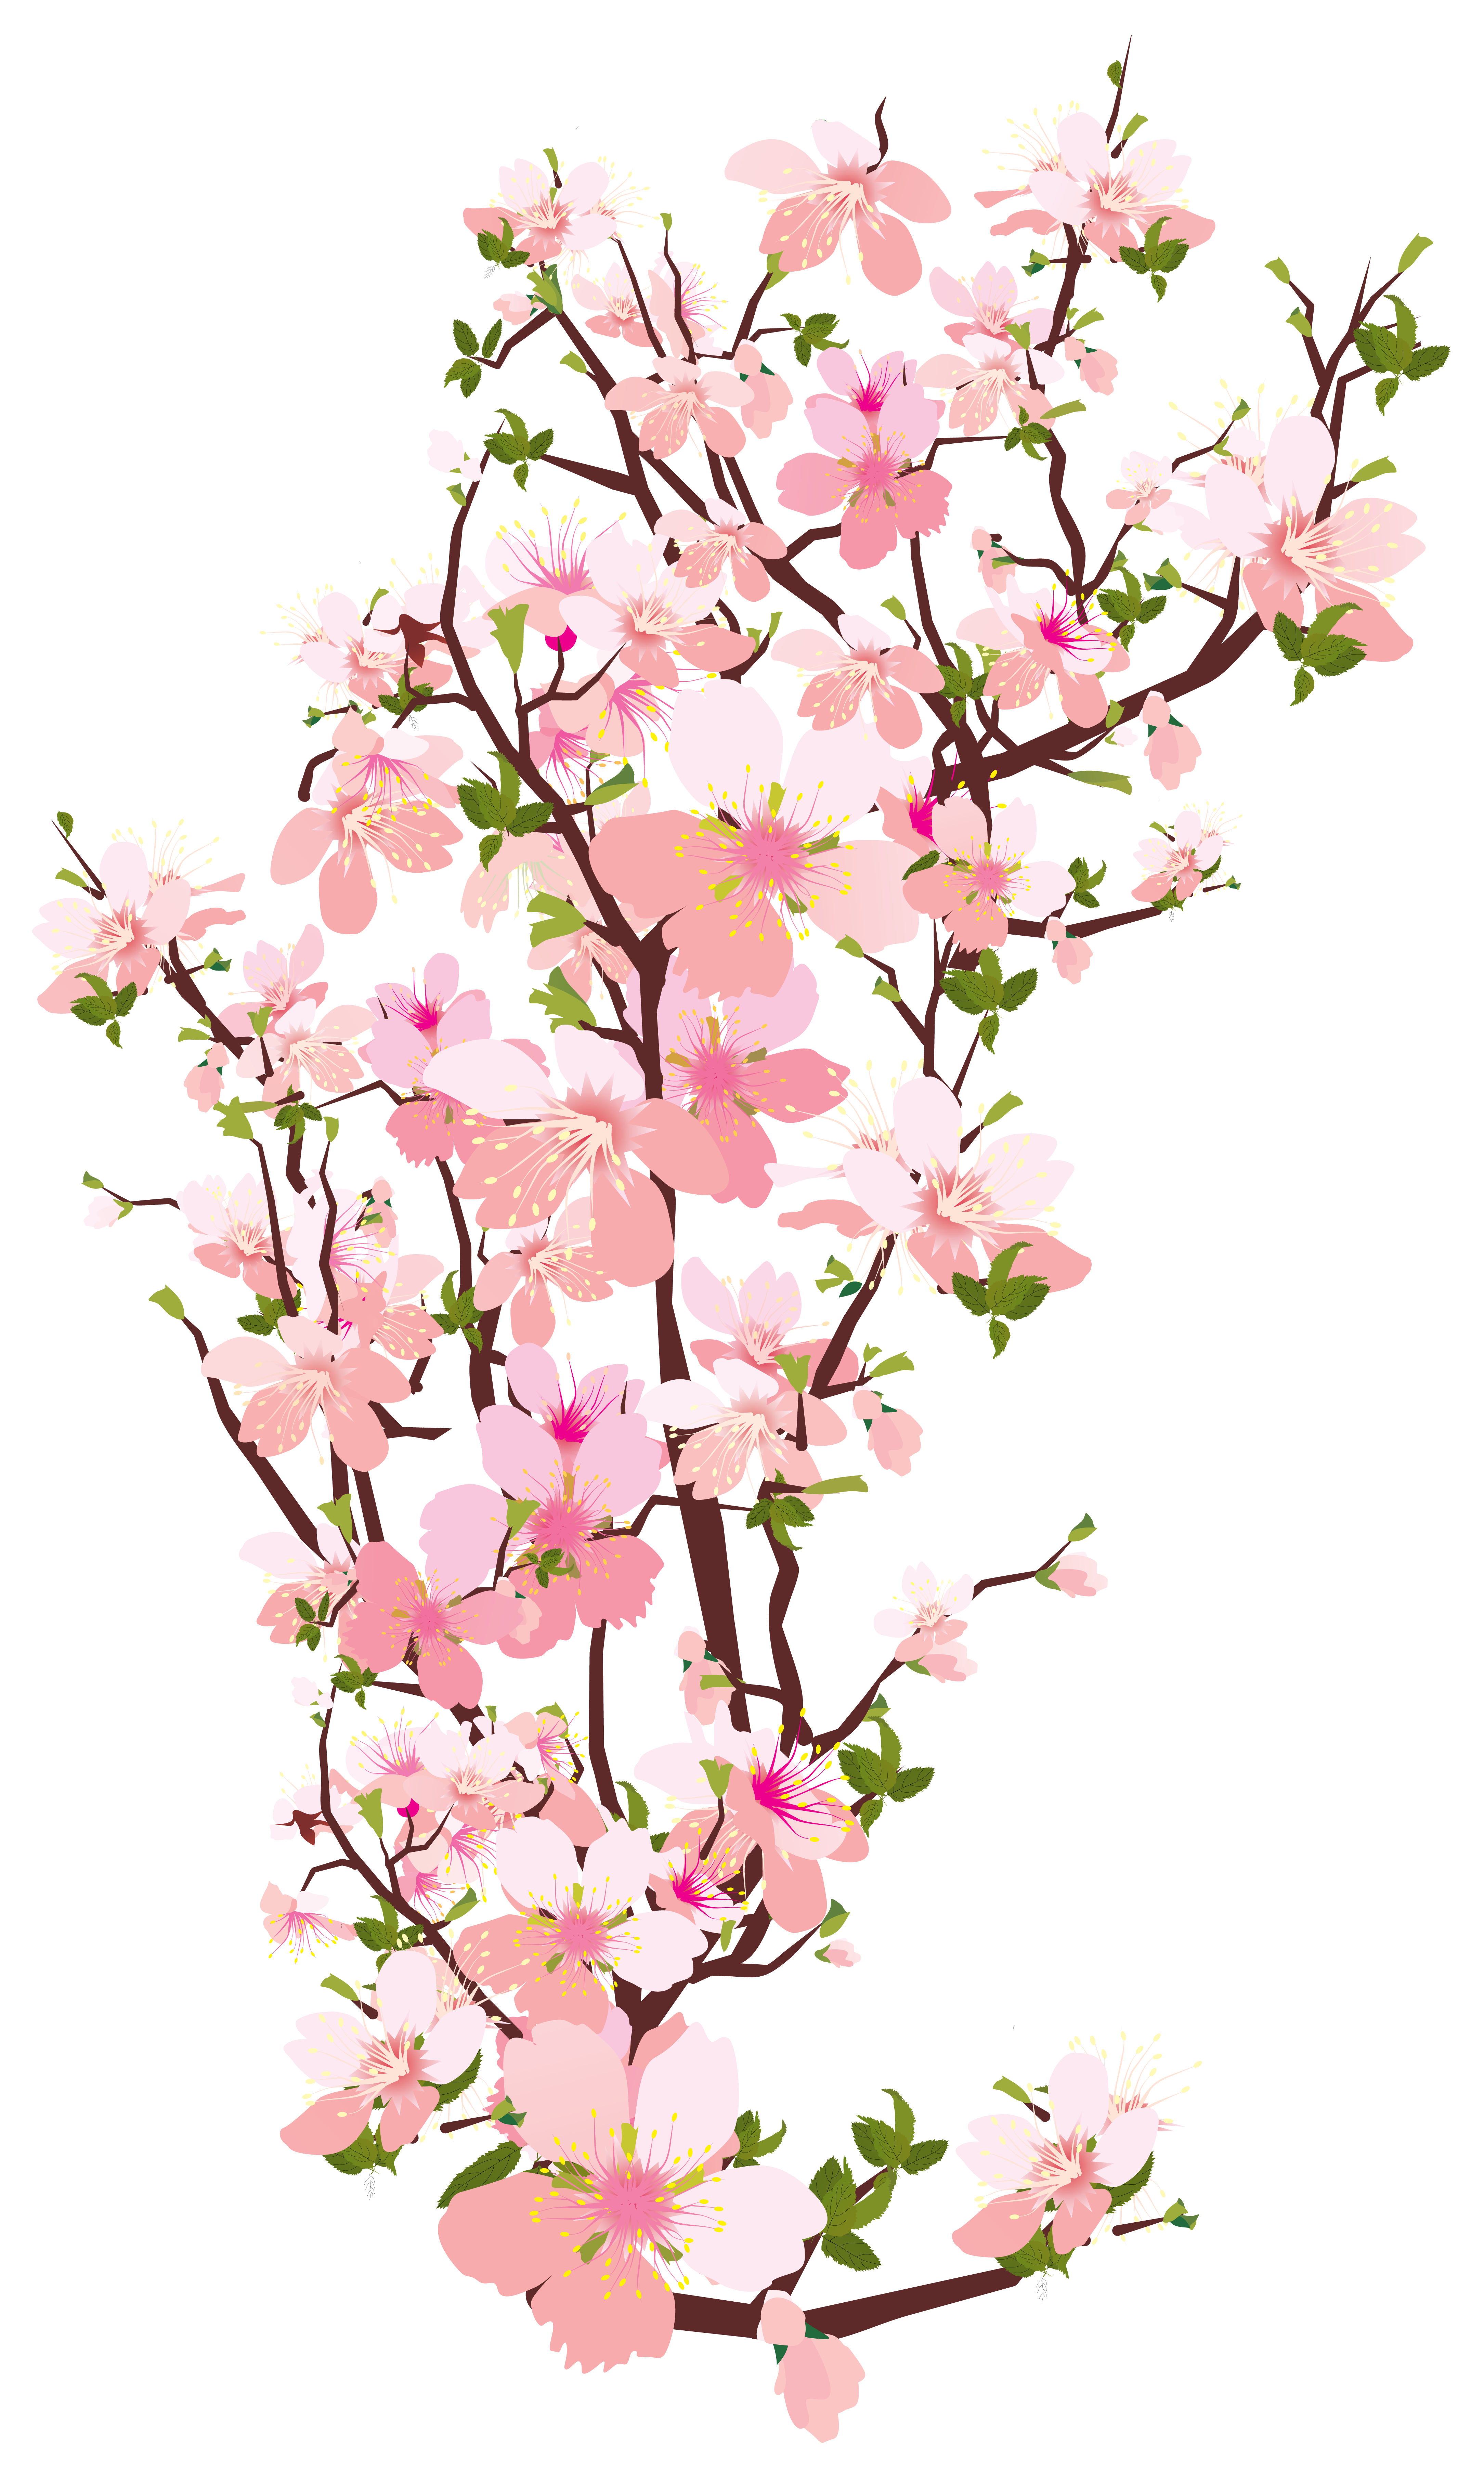 Spring art png. Tree branch transparent clip